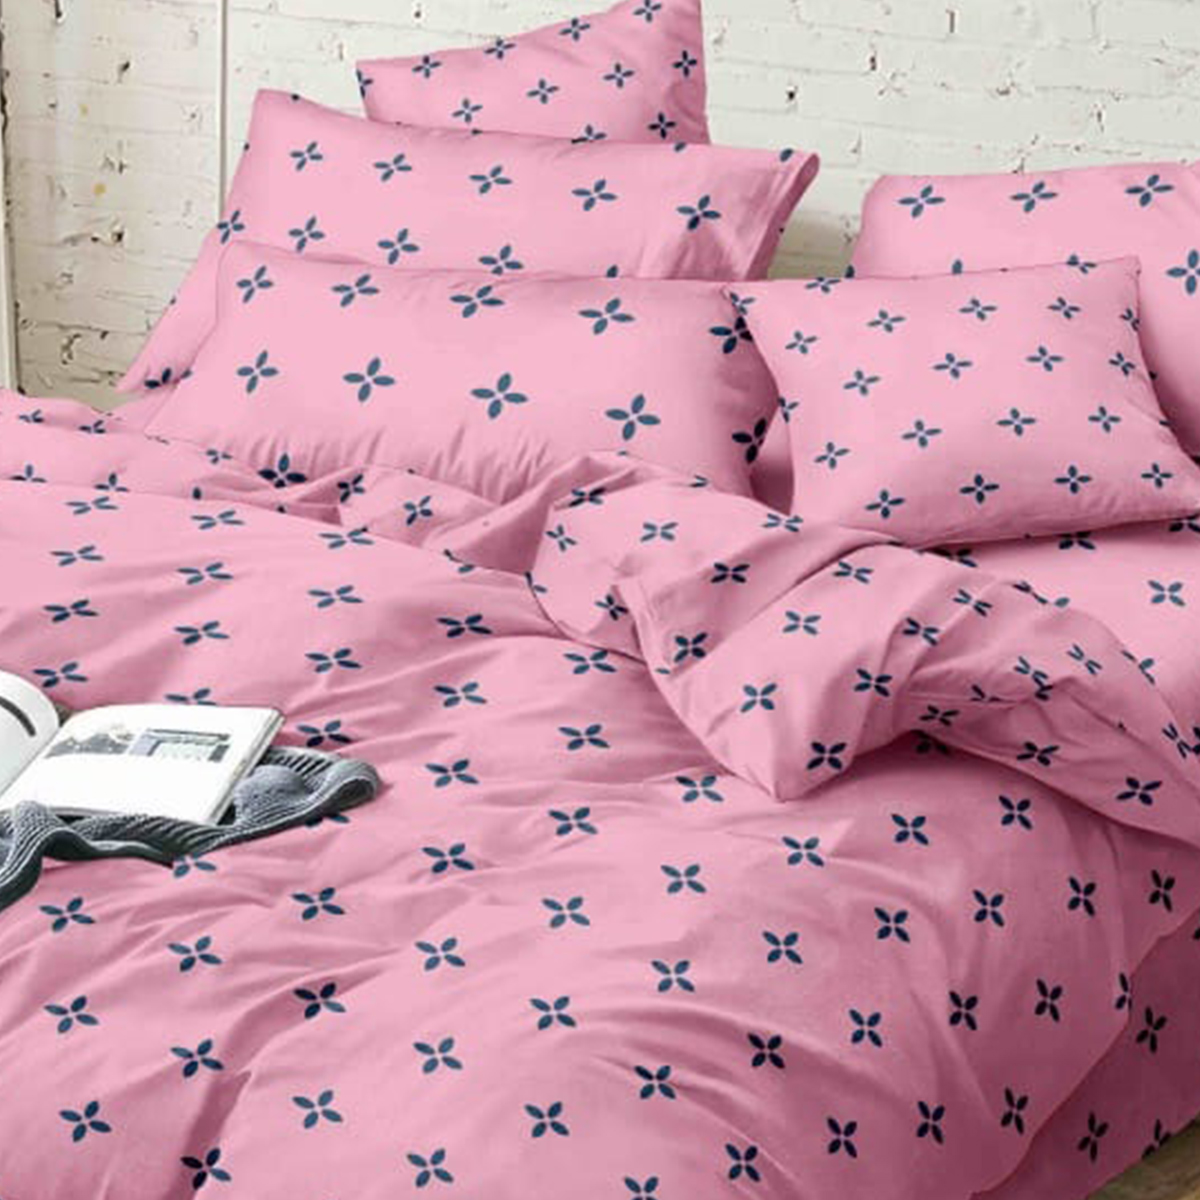 Capricious Pink Colored Printed Queen Sized Bedsheet With 2 Pillow Covers